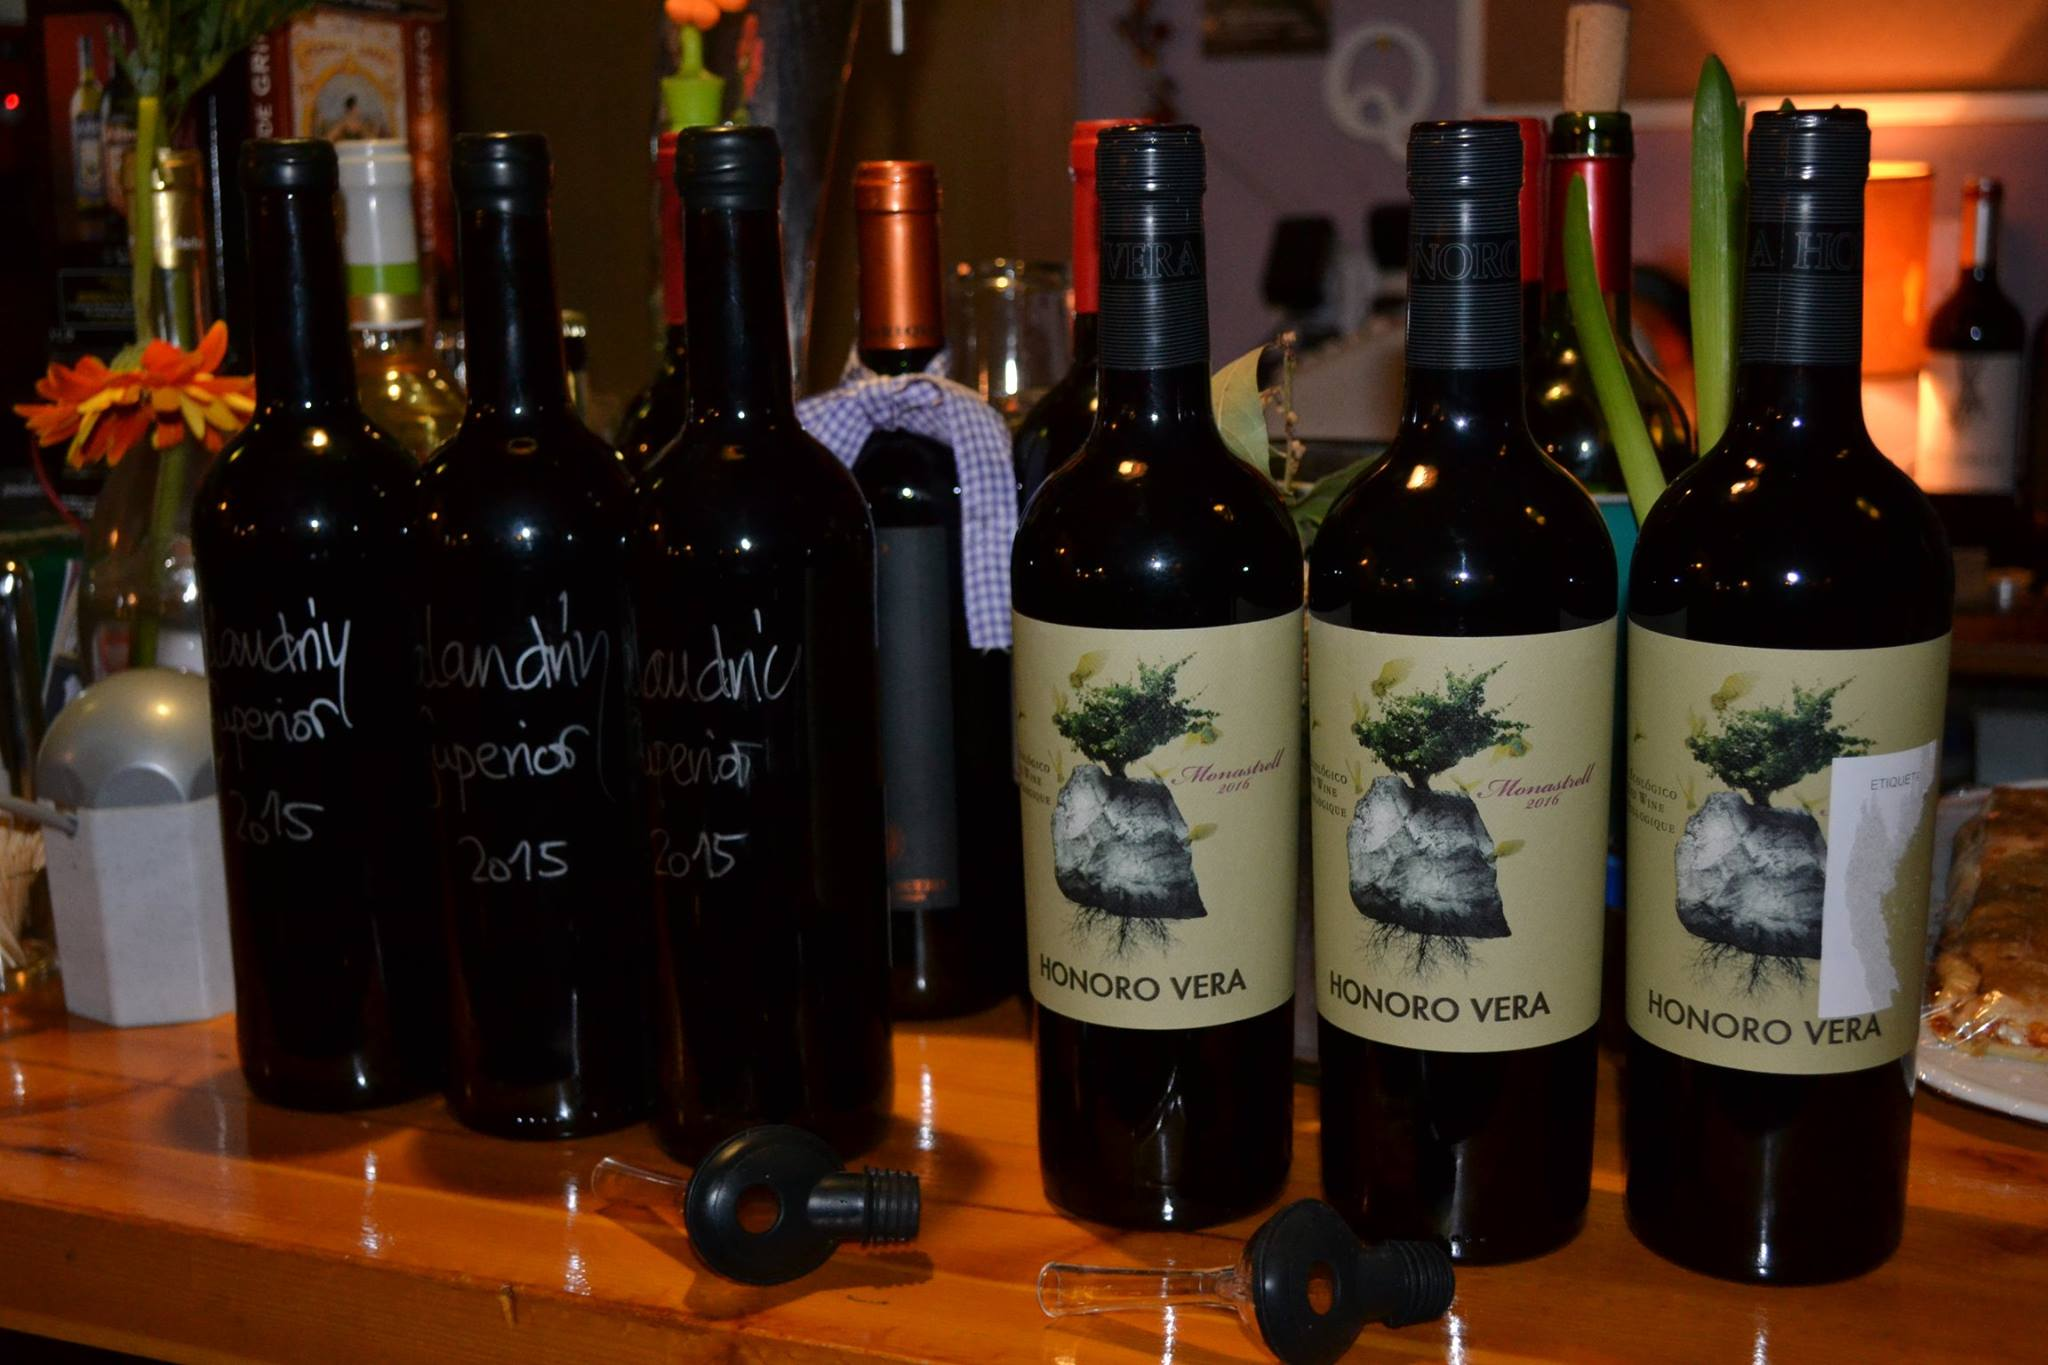 Some hand written bottles and organic wines